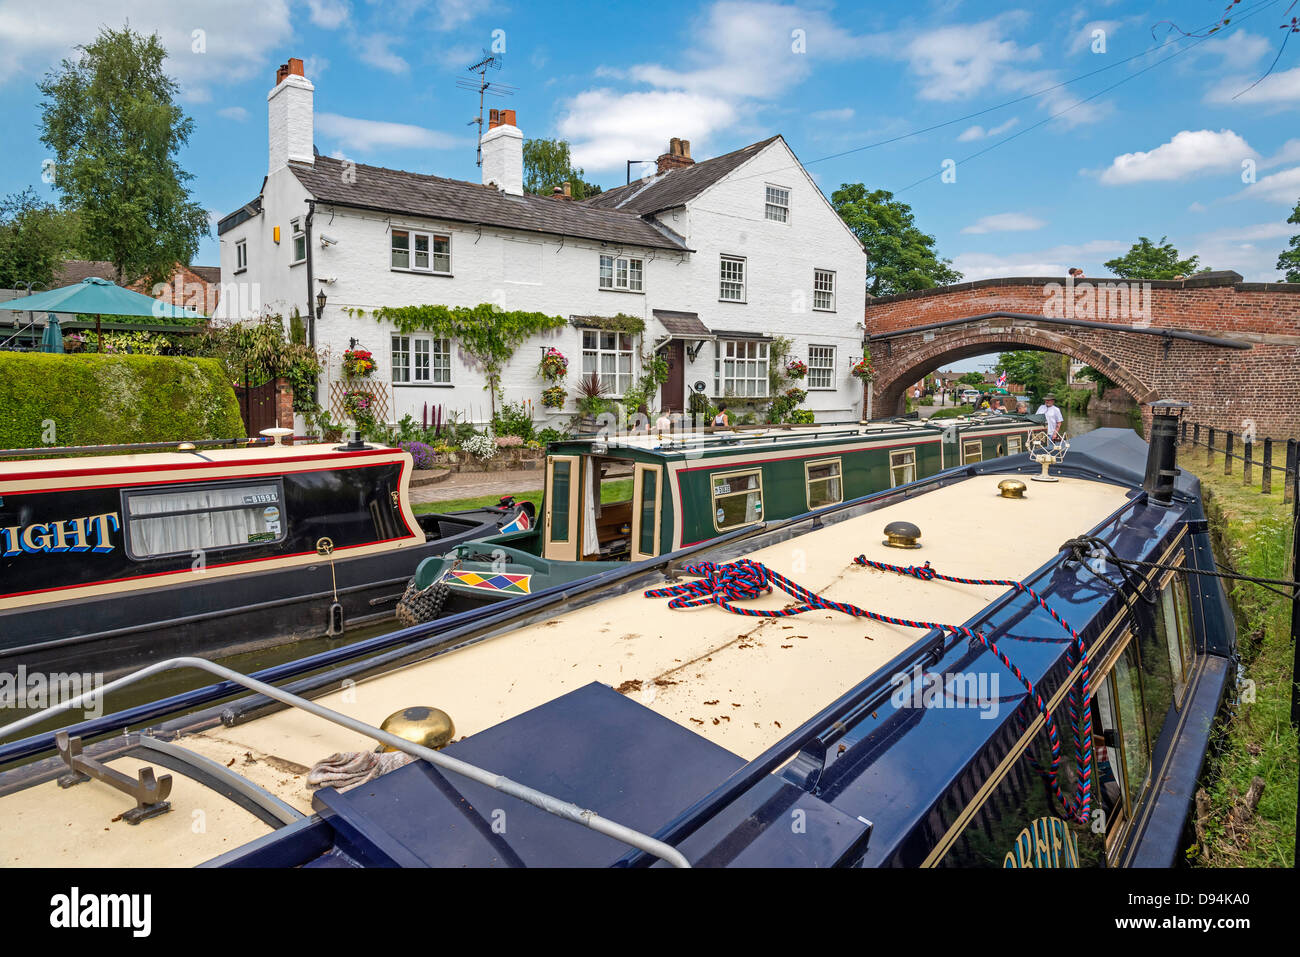 Bridgewater House on the canal at Lymm in Cheshire North West England. - Stock Image